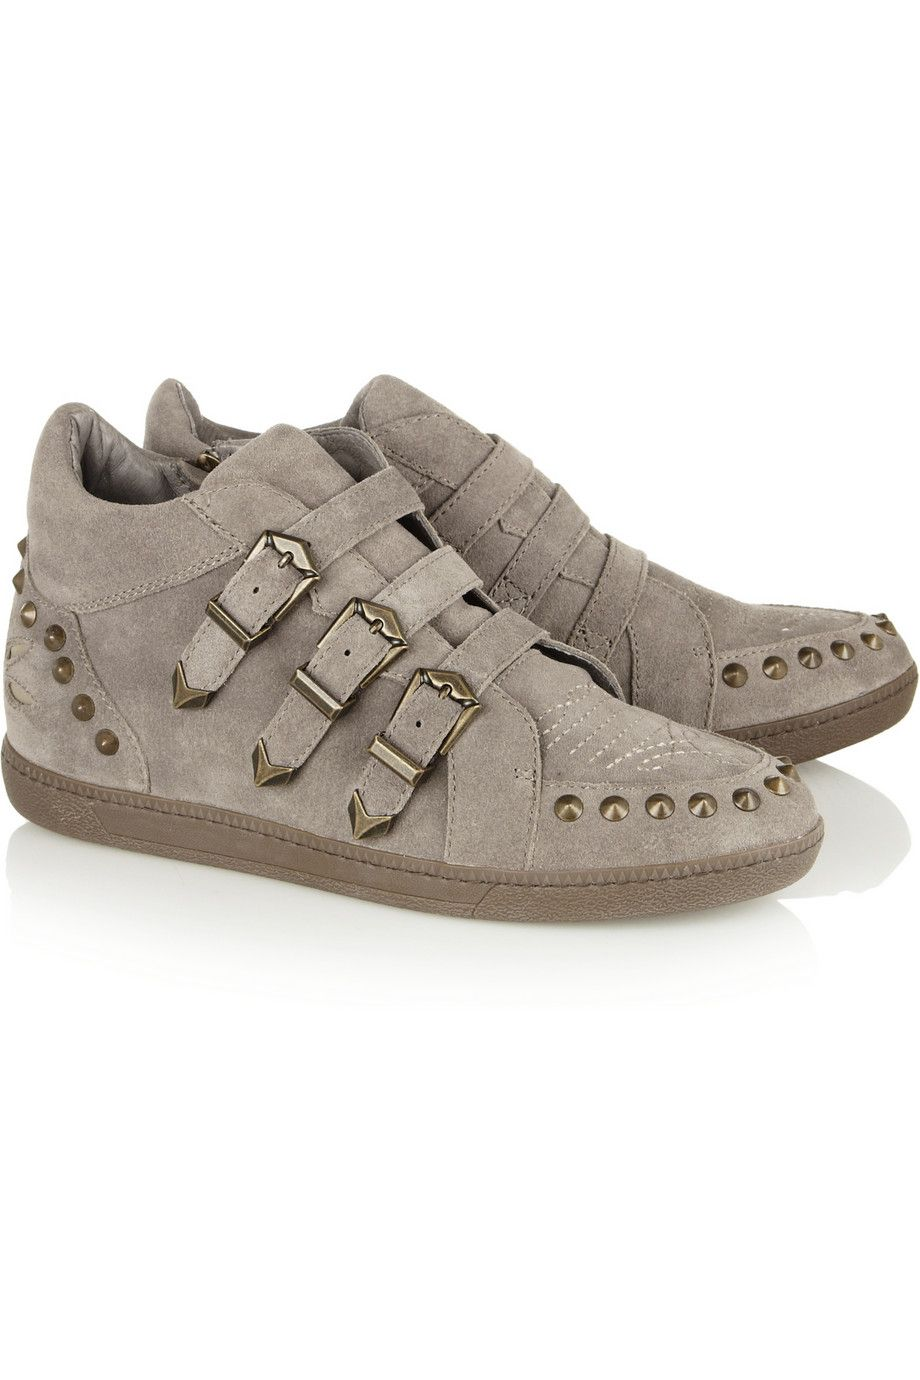 ASHZoo studded suede sneakers